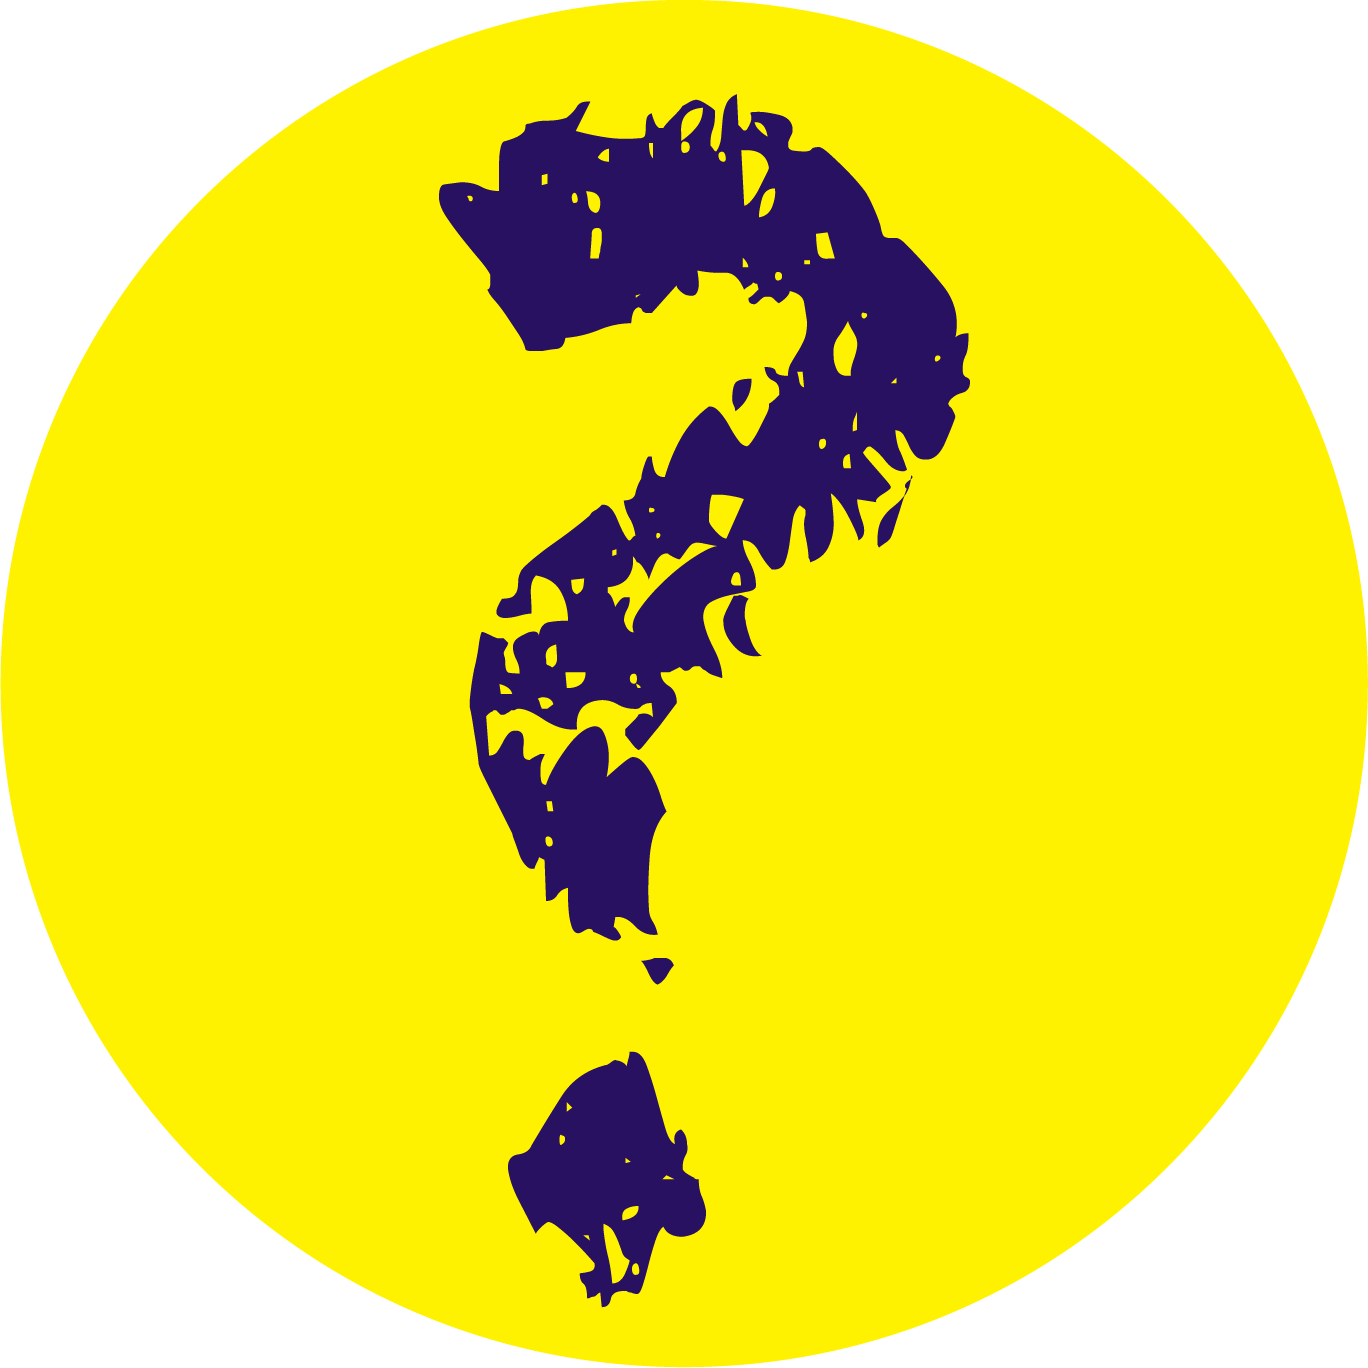 question_mark-01.png